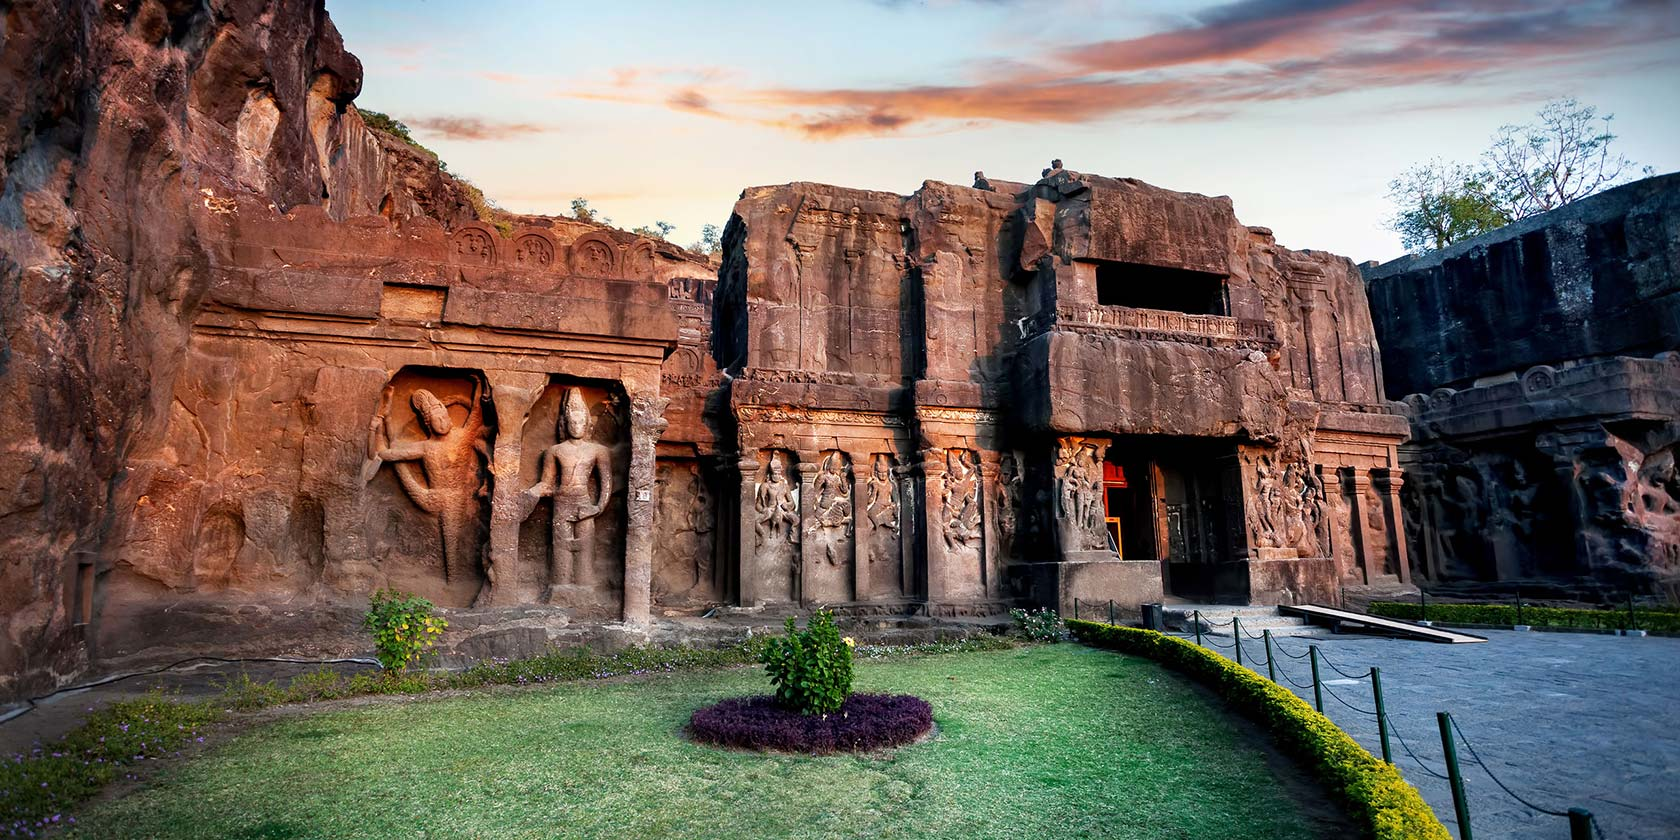 dating aurangabad Ajanta caves: ajanta caves northeast of aurangabad especially, ajanta, which contains fine murals dating from the 1st century bce to the 9th century ce.